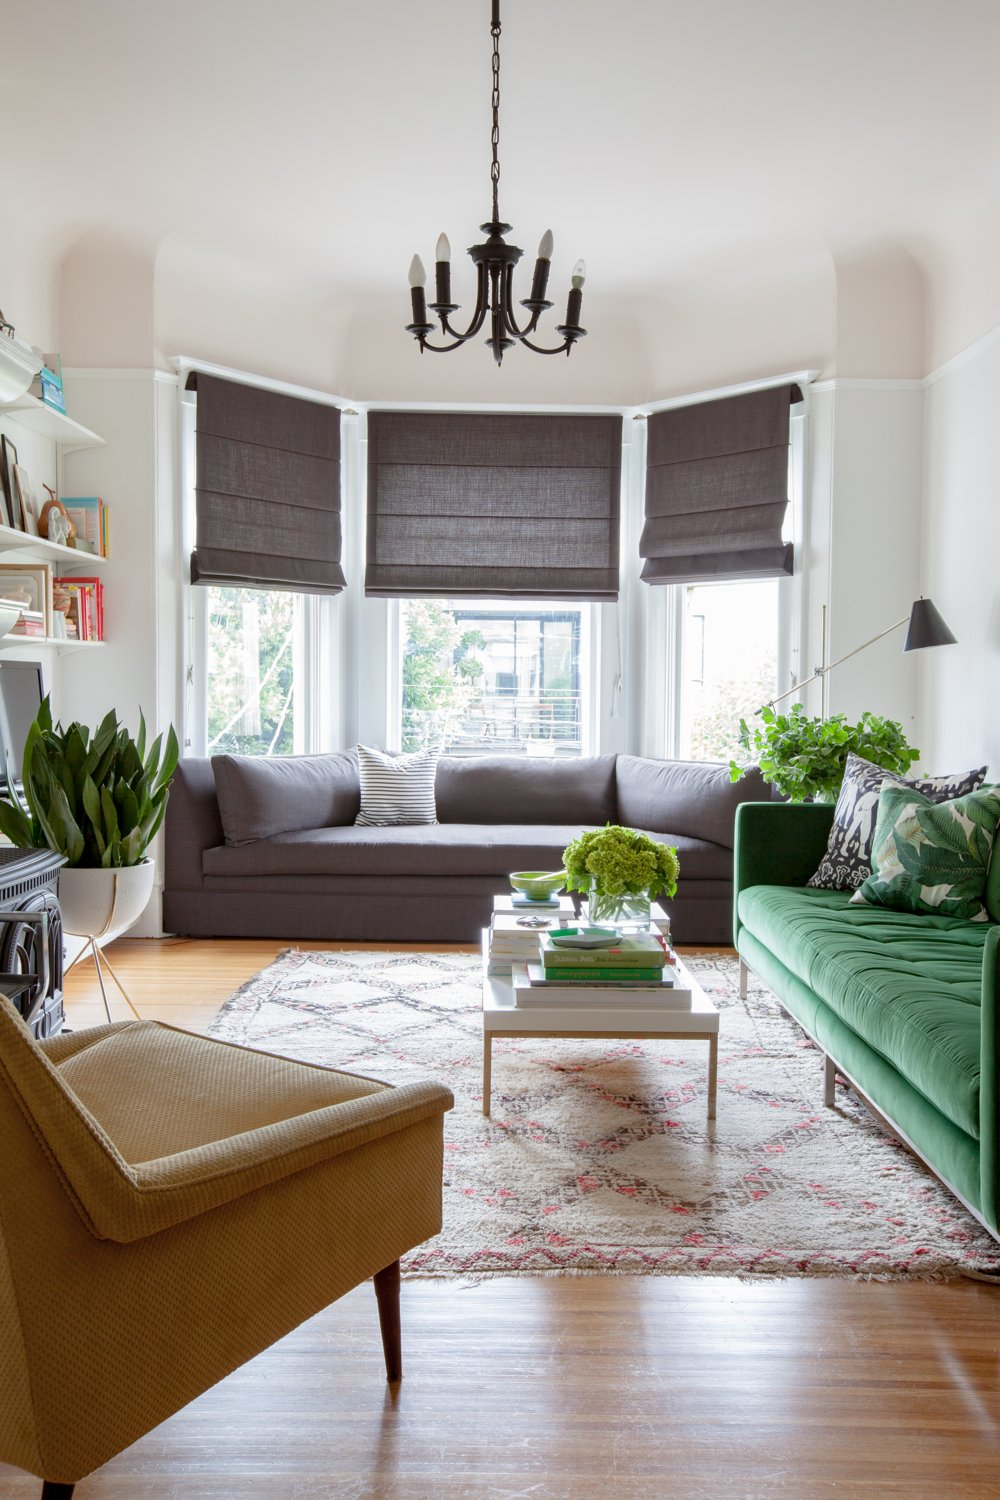 Seating Ideas For A Small Living Room: San Francisco House Tour